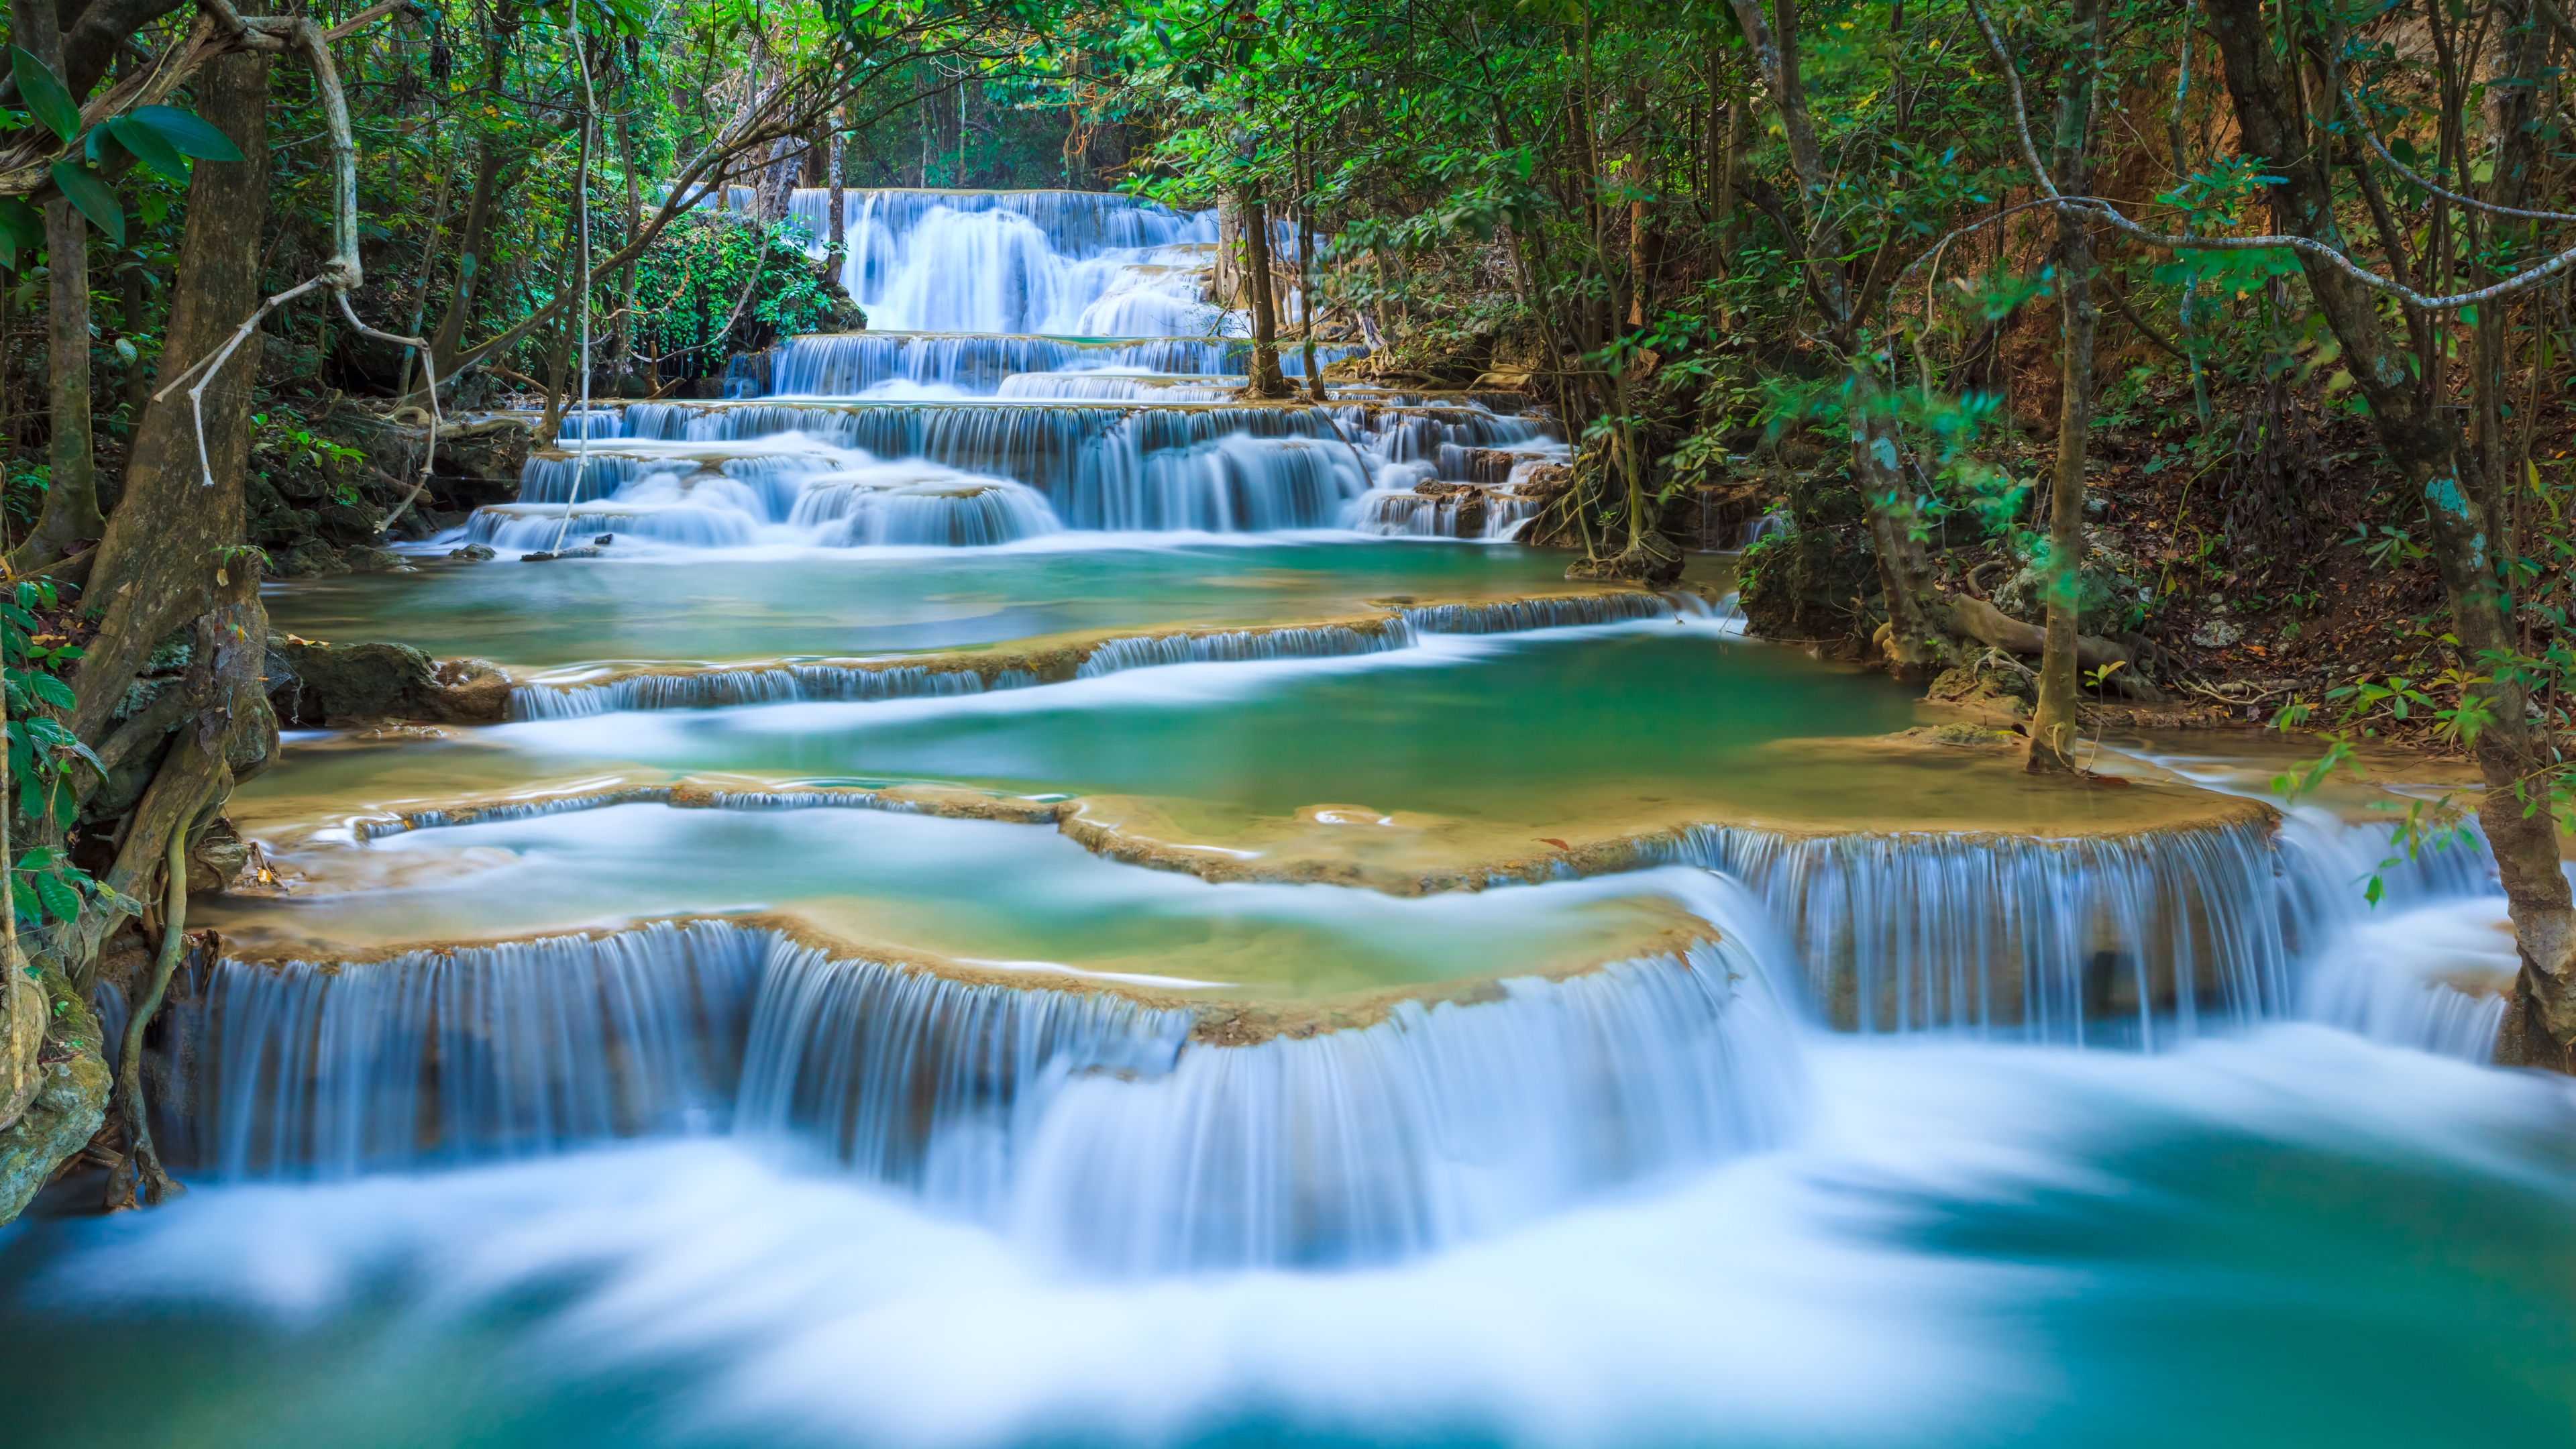 15 erawan waterfall hd wallpapers | background images - wallpaper abyss